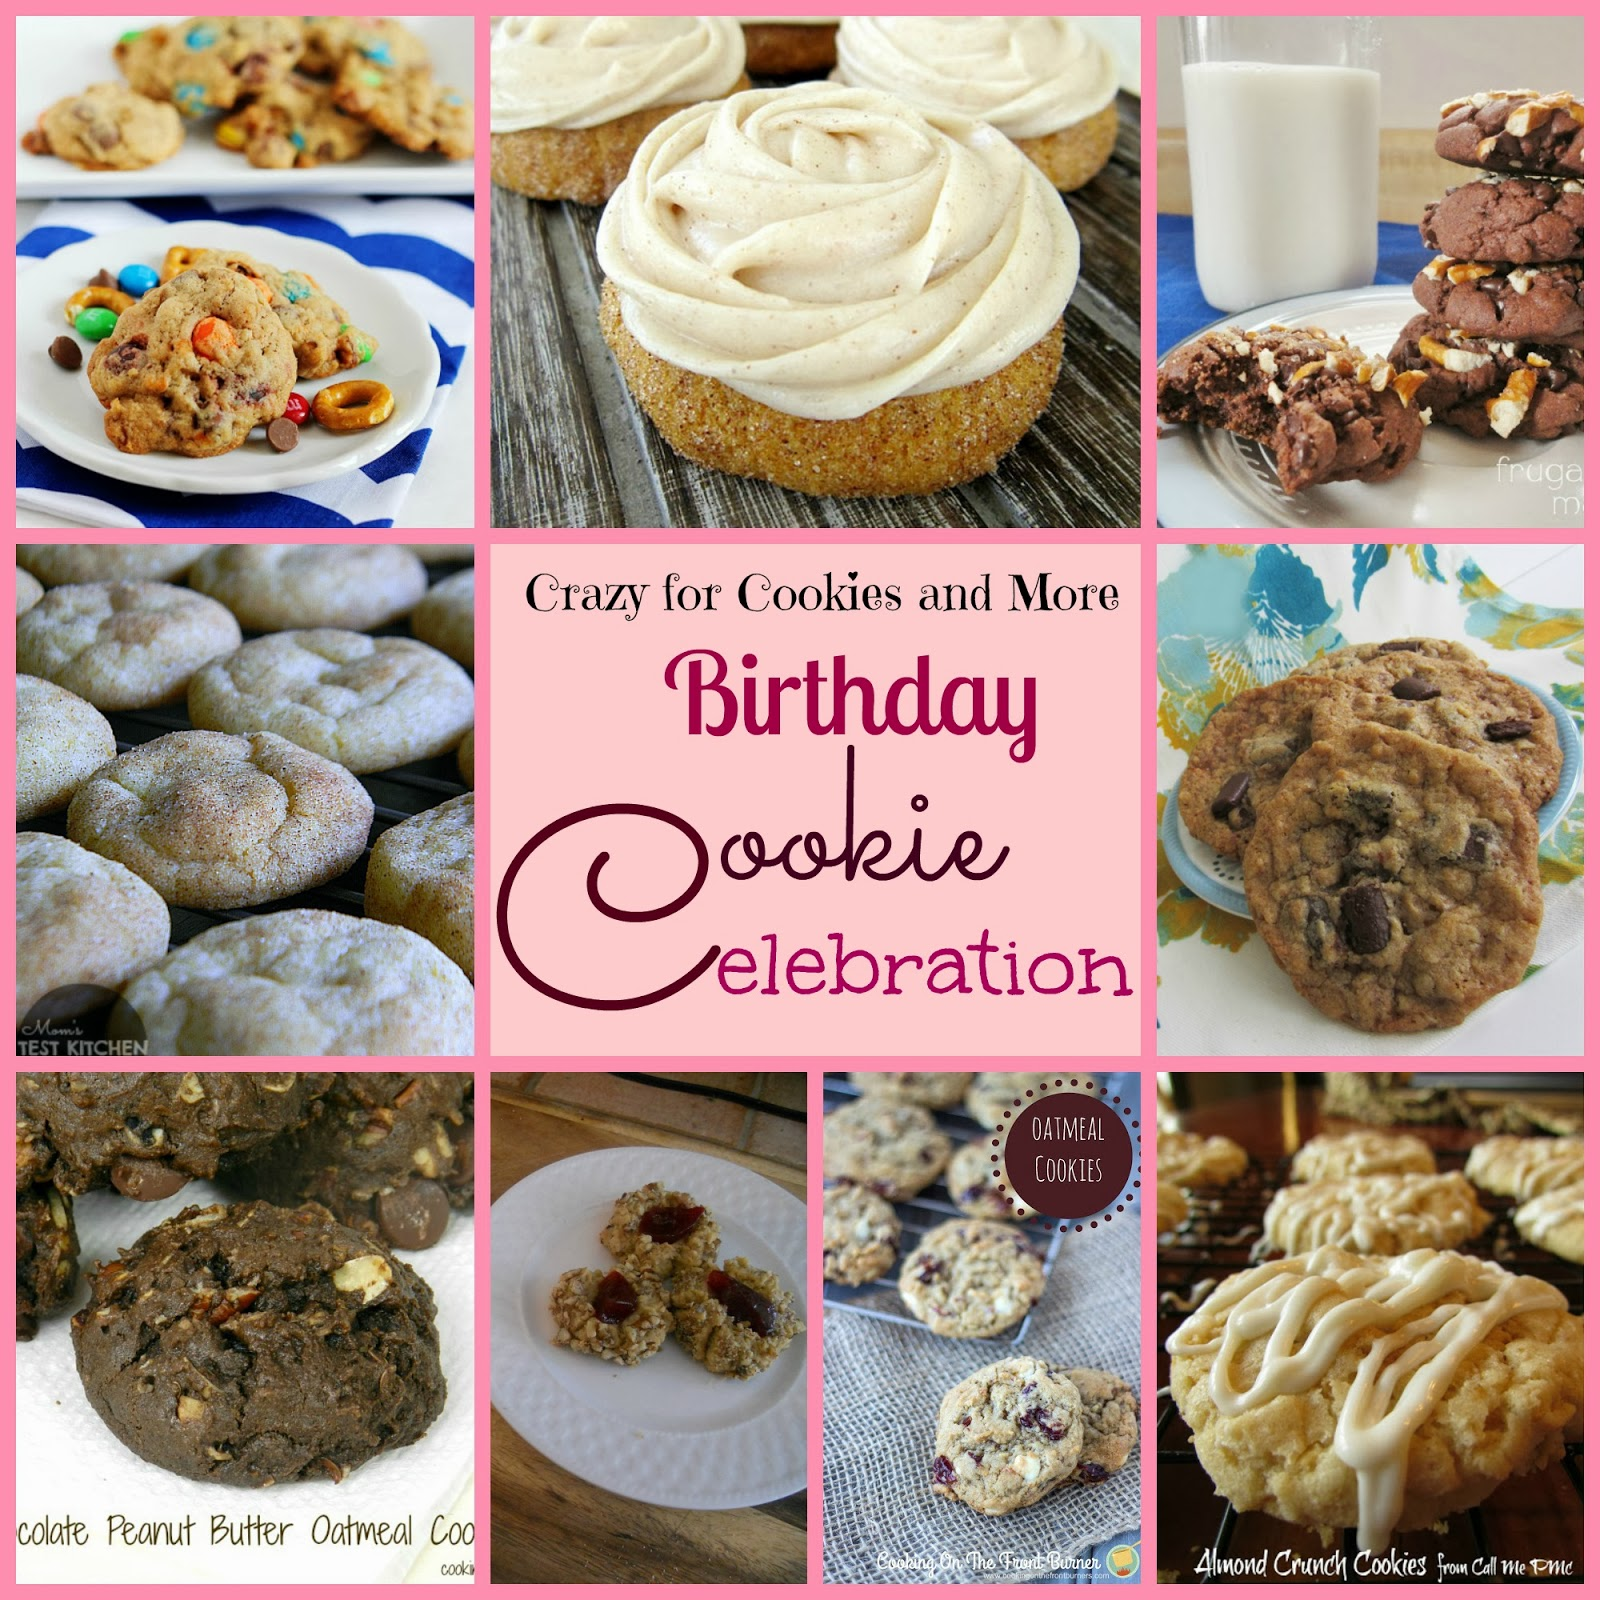 Crazy For Cookies And More: Birthday Cookie Celebration